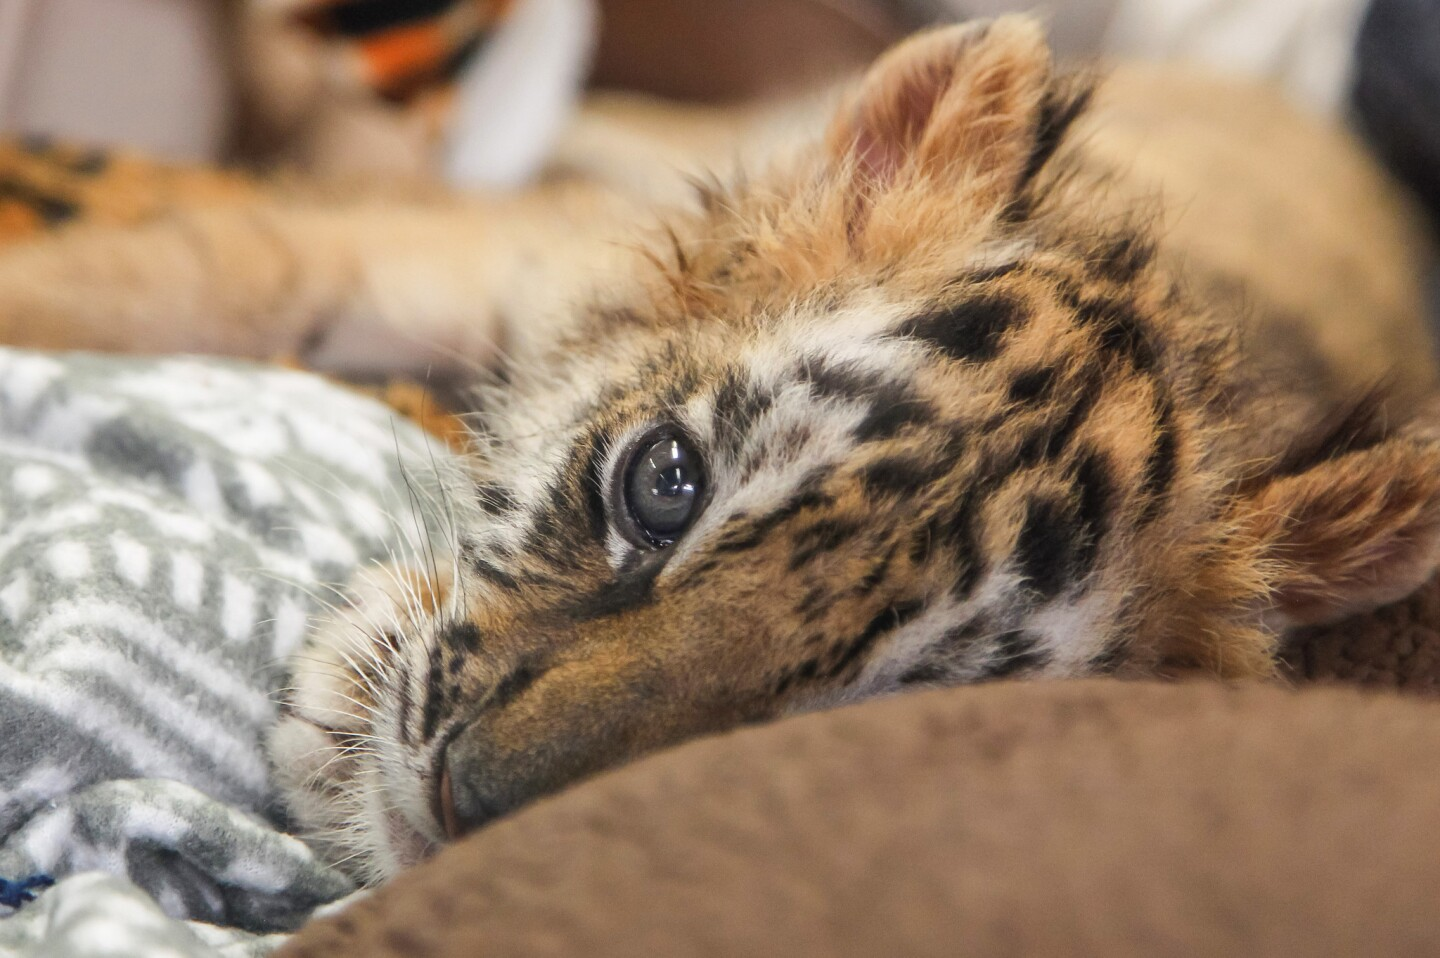 Tiger Cub Confiscated at Border